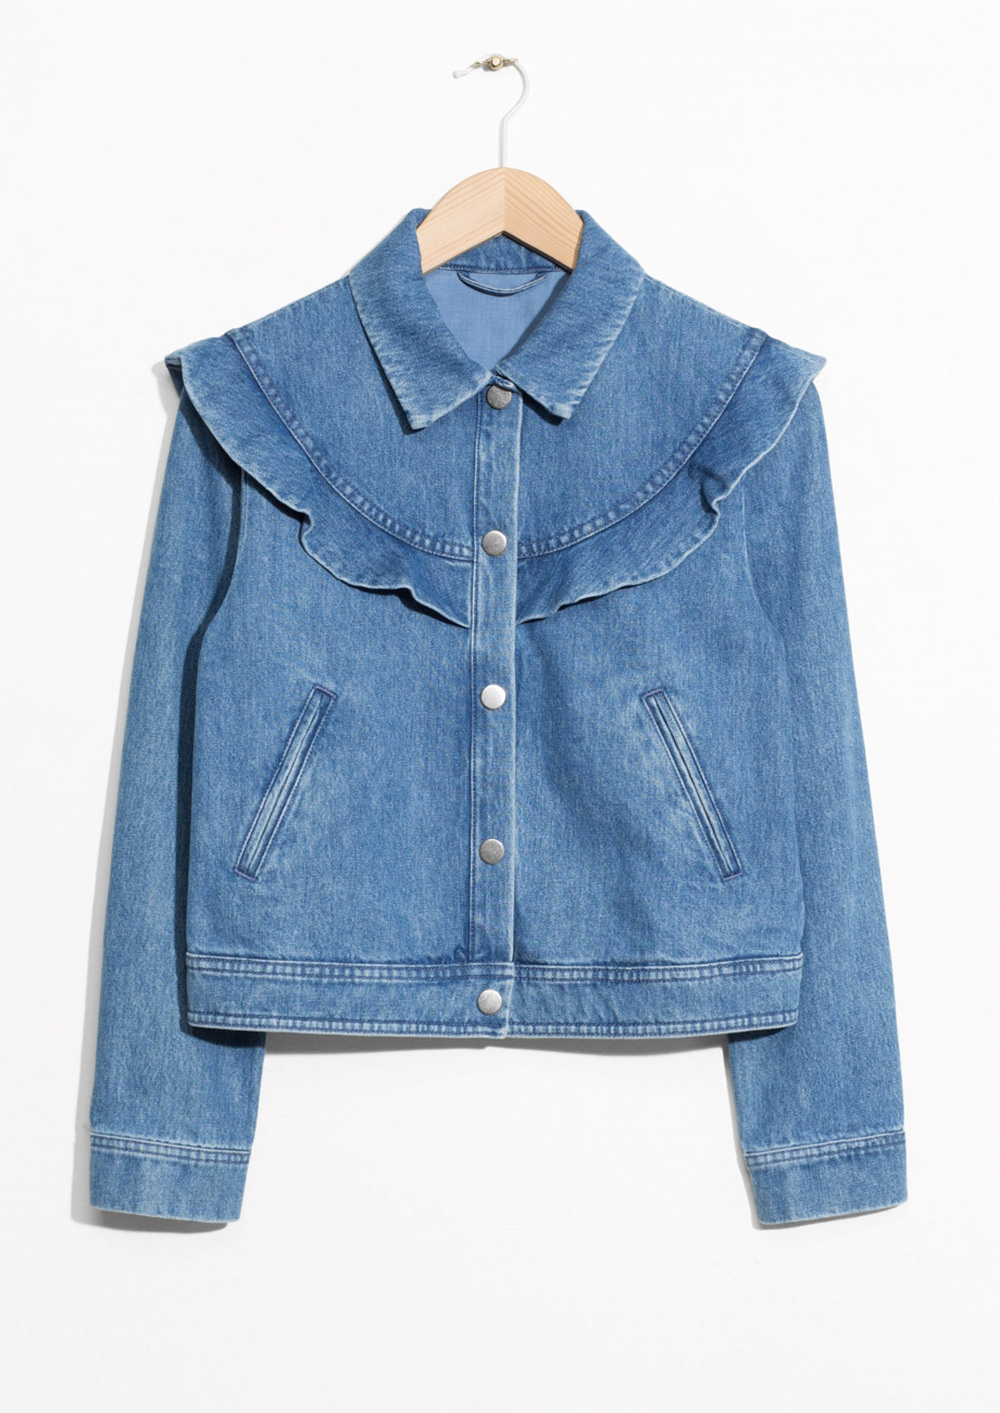 Blog-Mode-And-The-City-Lifestyle-Cinq-Petites-Choses-235-veste-jean-and-other-stories